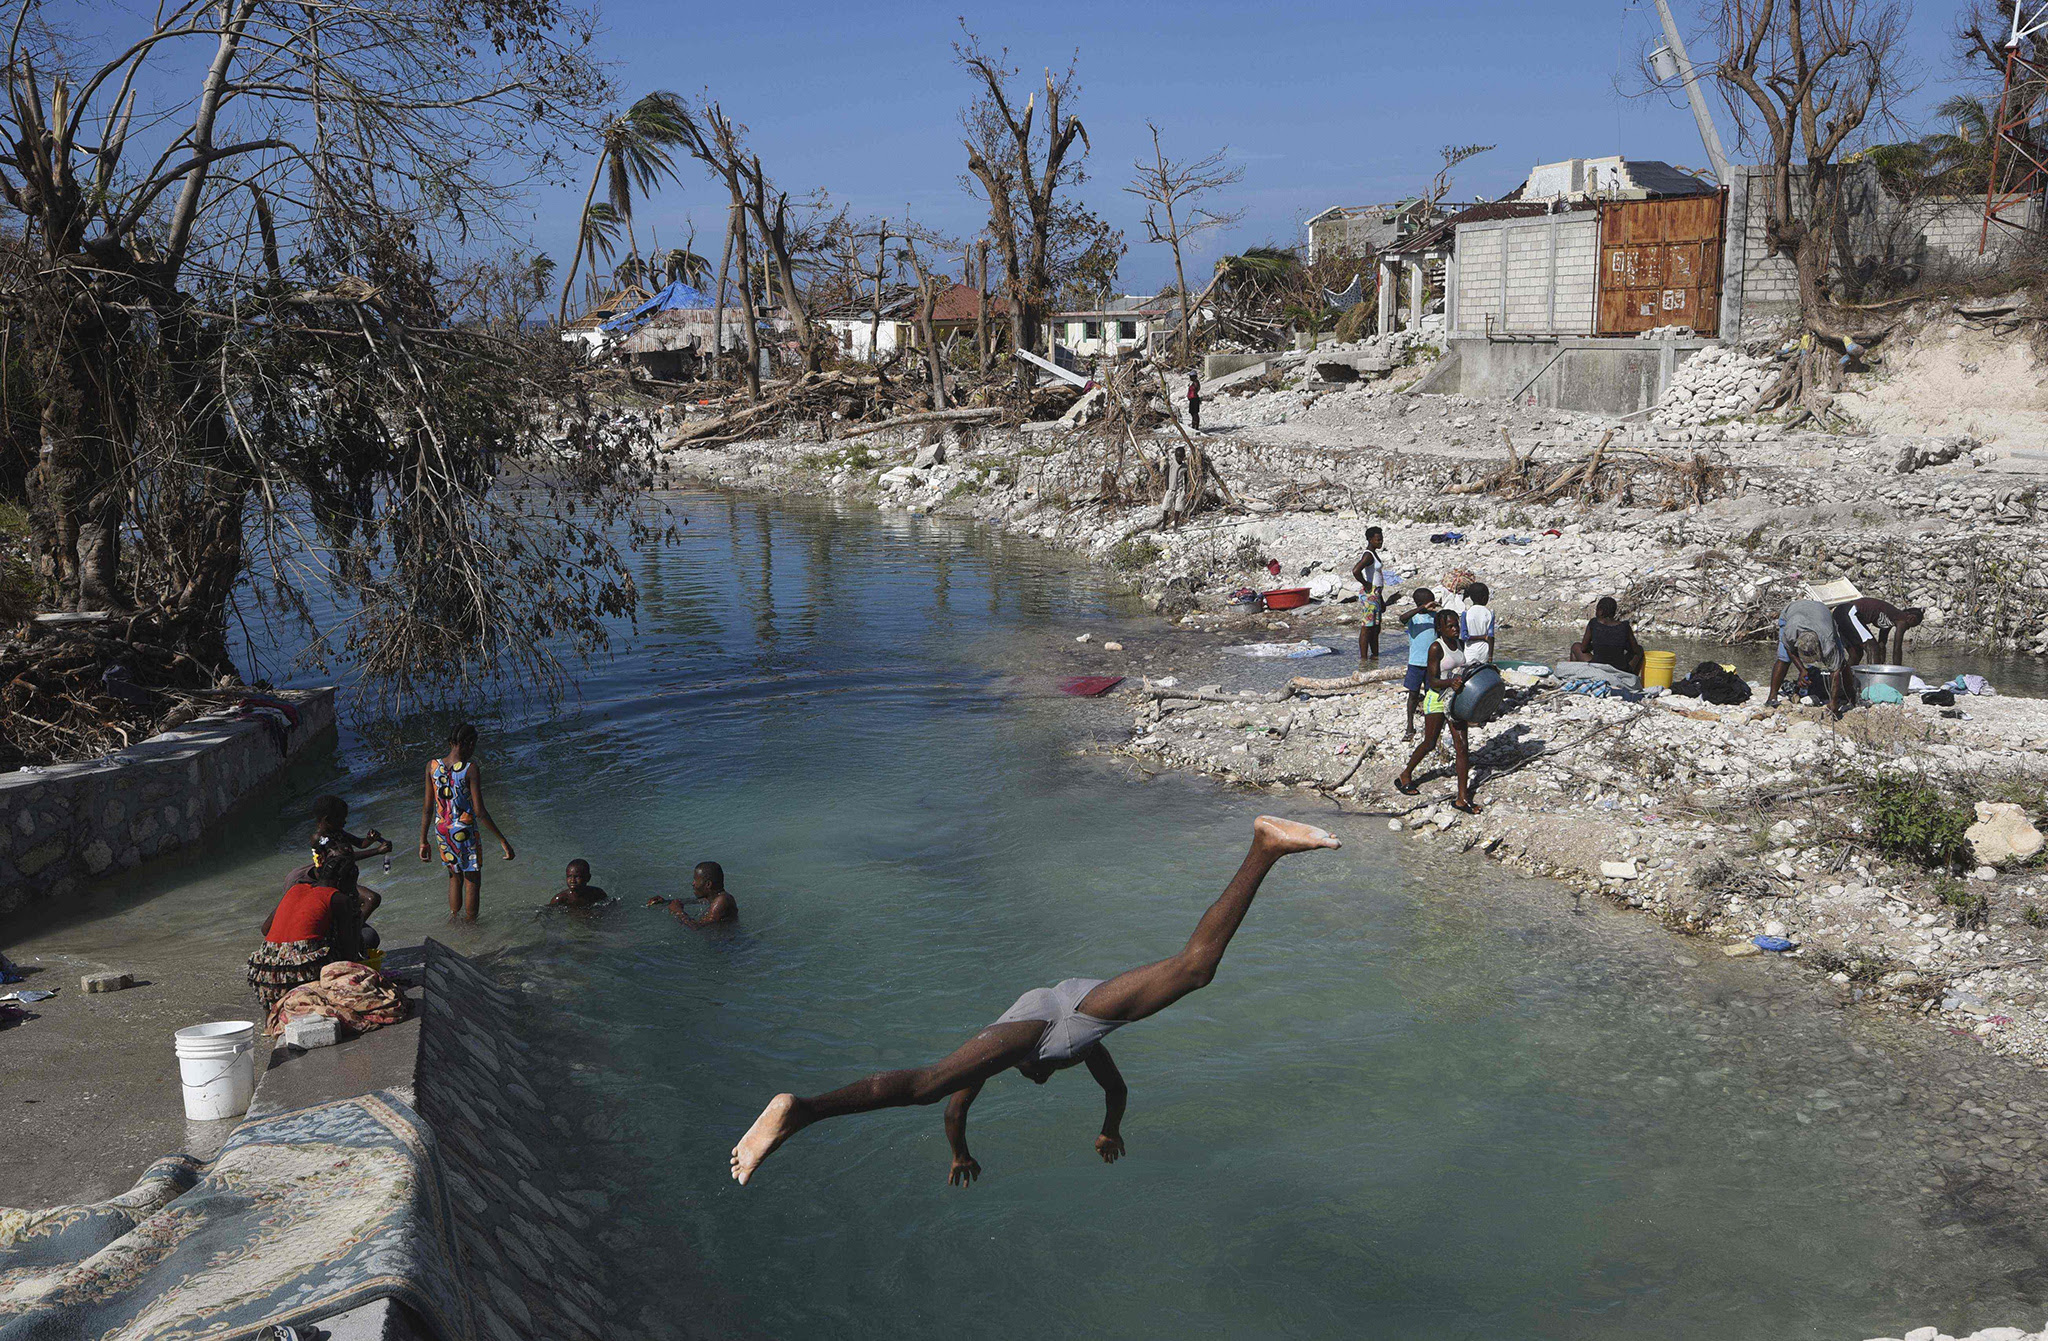 Locals wash clothes in Port Salut southwest of Port-au-Prince, on October 12, 2016, following the passage of Hurricane Matthew. A week after Matthew tore through the country, many remote areas communities were still left to their own devices. Families with destroyed homes and shattered livelihoods waited and prayed for help.   / AFP PHOTO / RODRIGO ARANGUARODRIGO ARANGUA/AFP/Getty Images